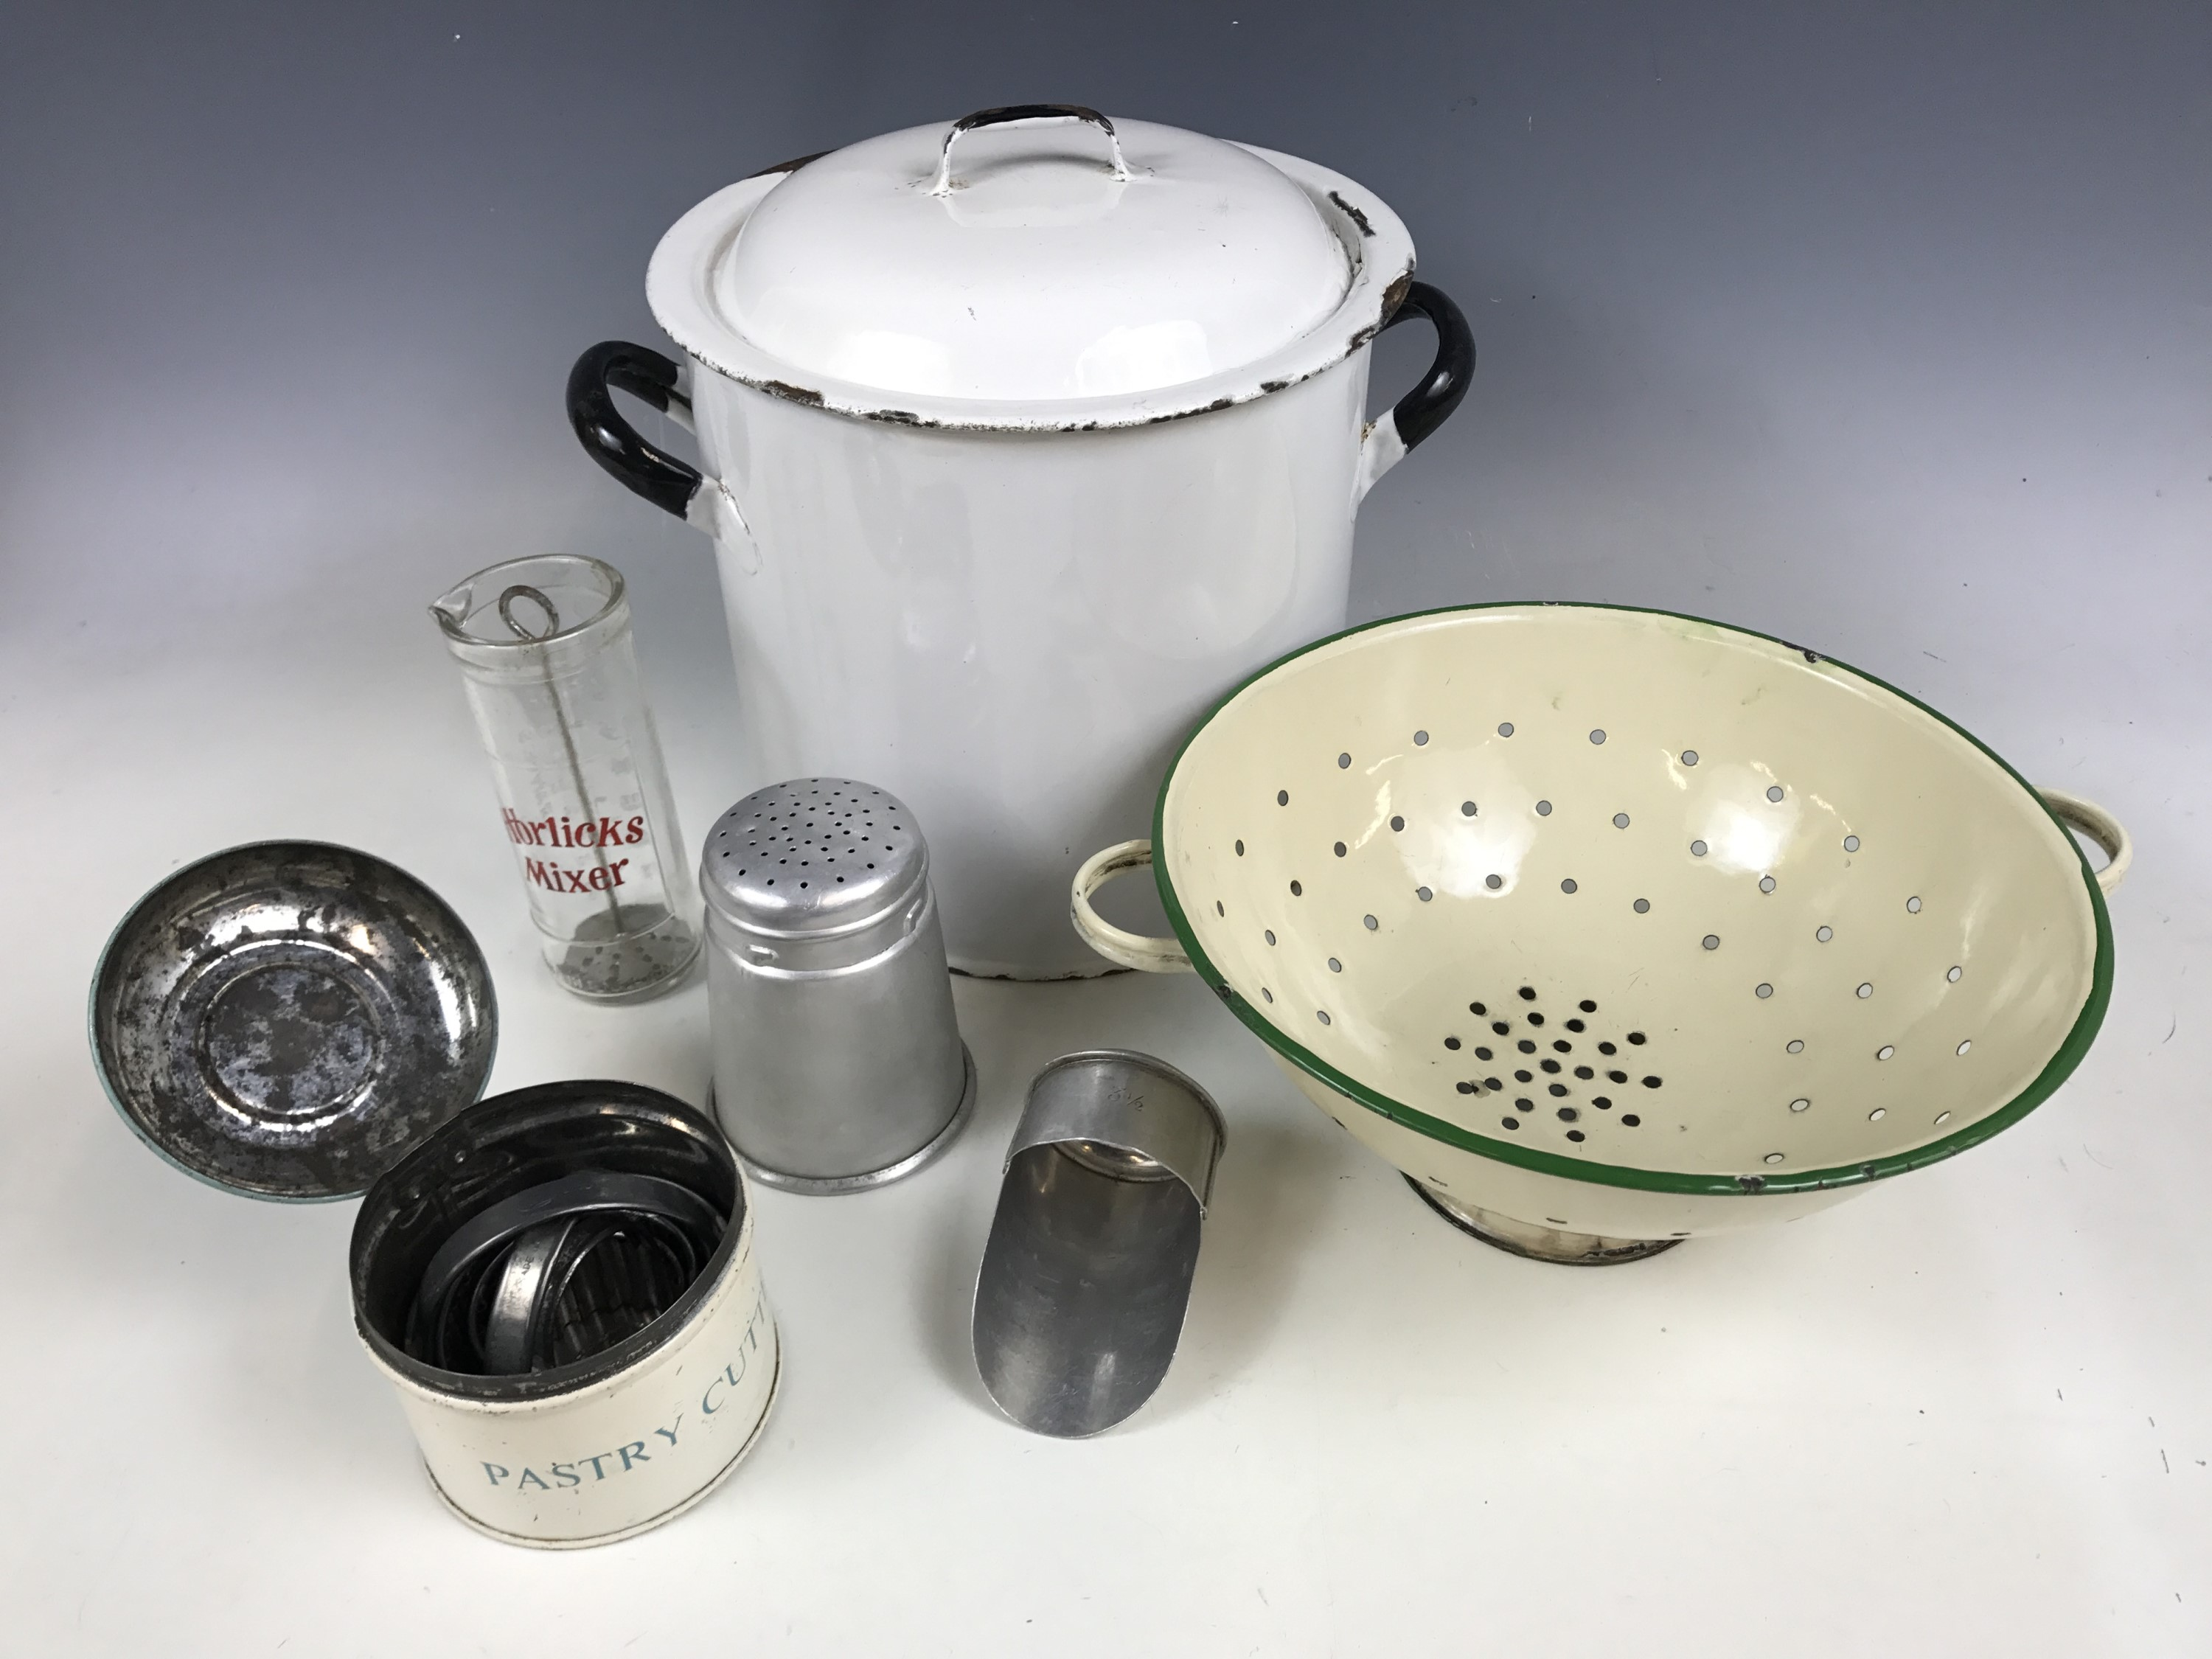 Lot 34 - Vintage kitchenalia, including an enamelled bread bin, an enamelled colander, Tala Ware pastry